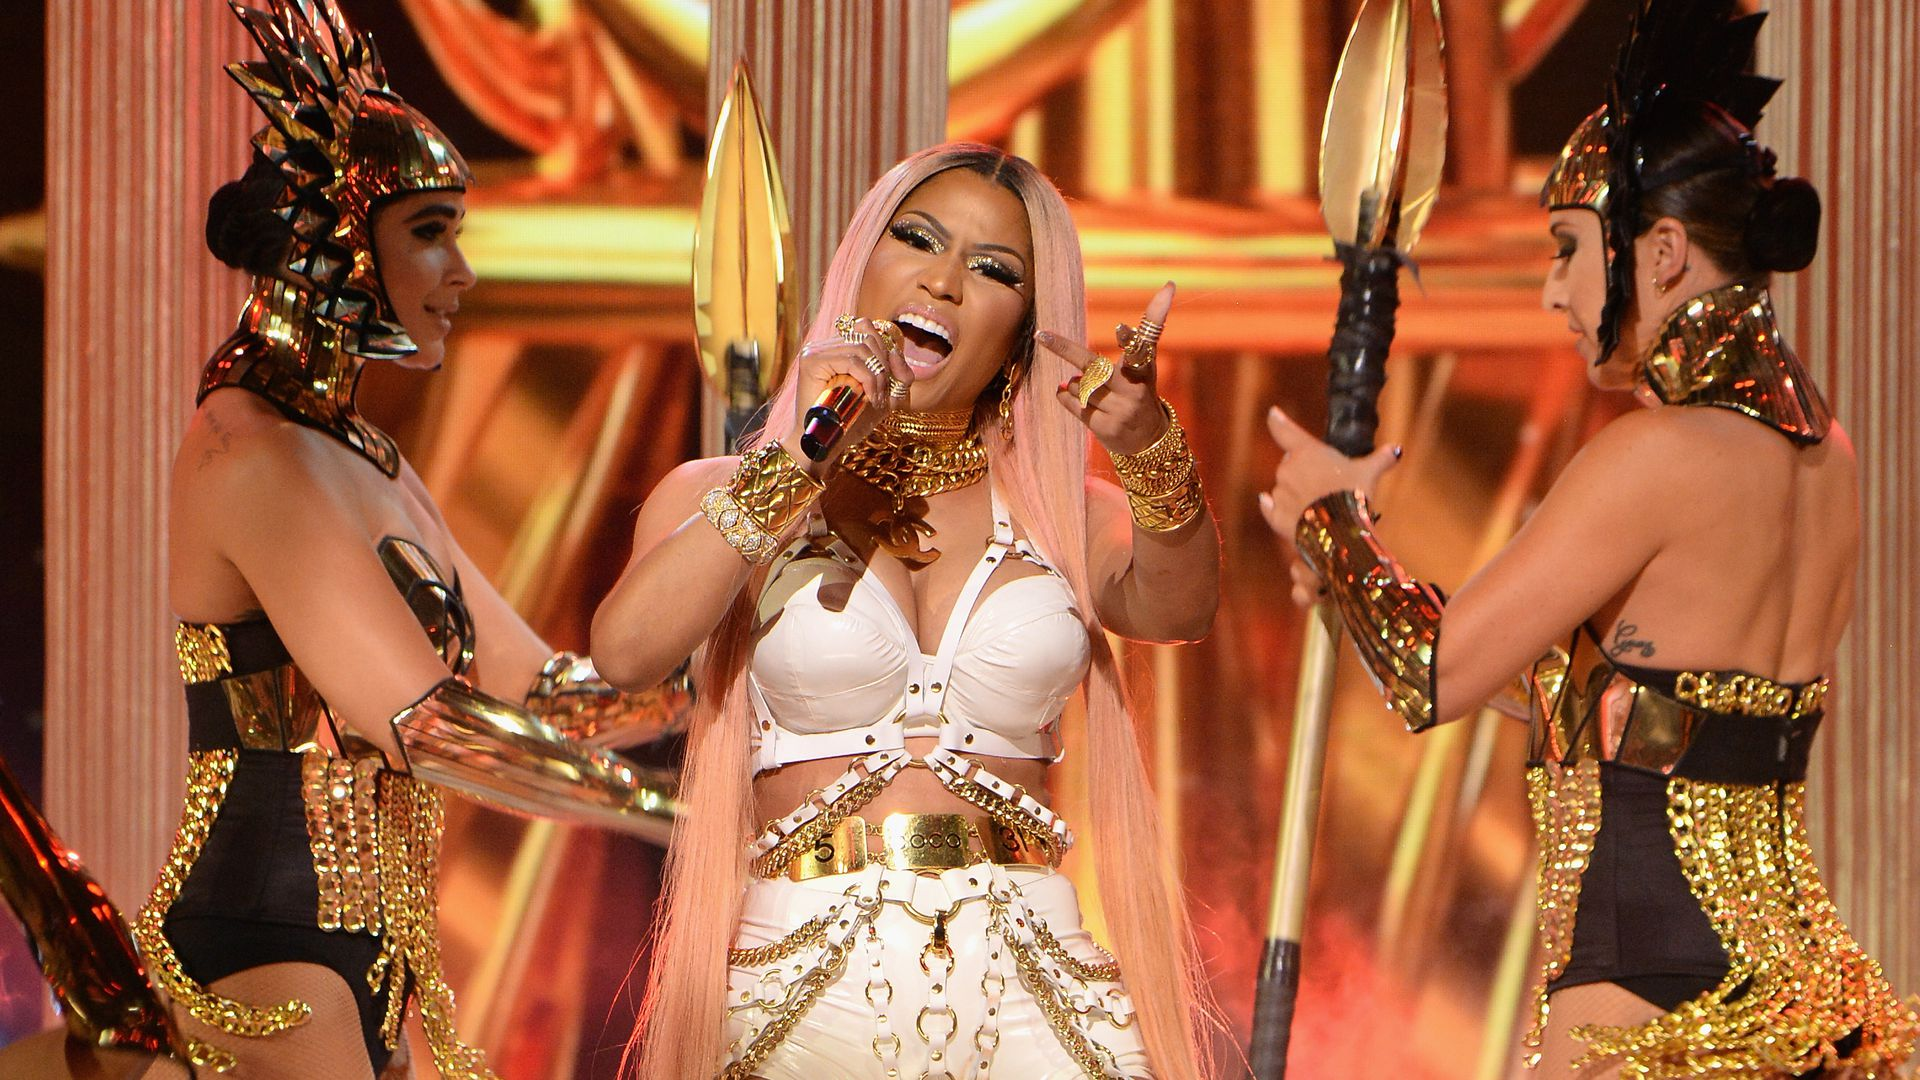 Rapper Nicki Minaj performing